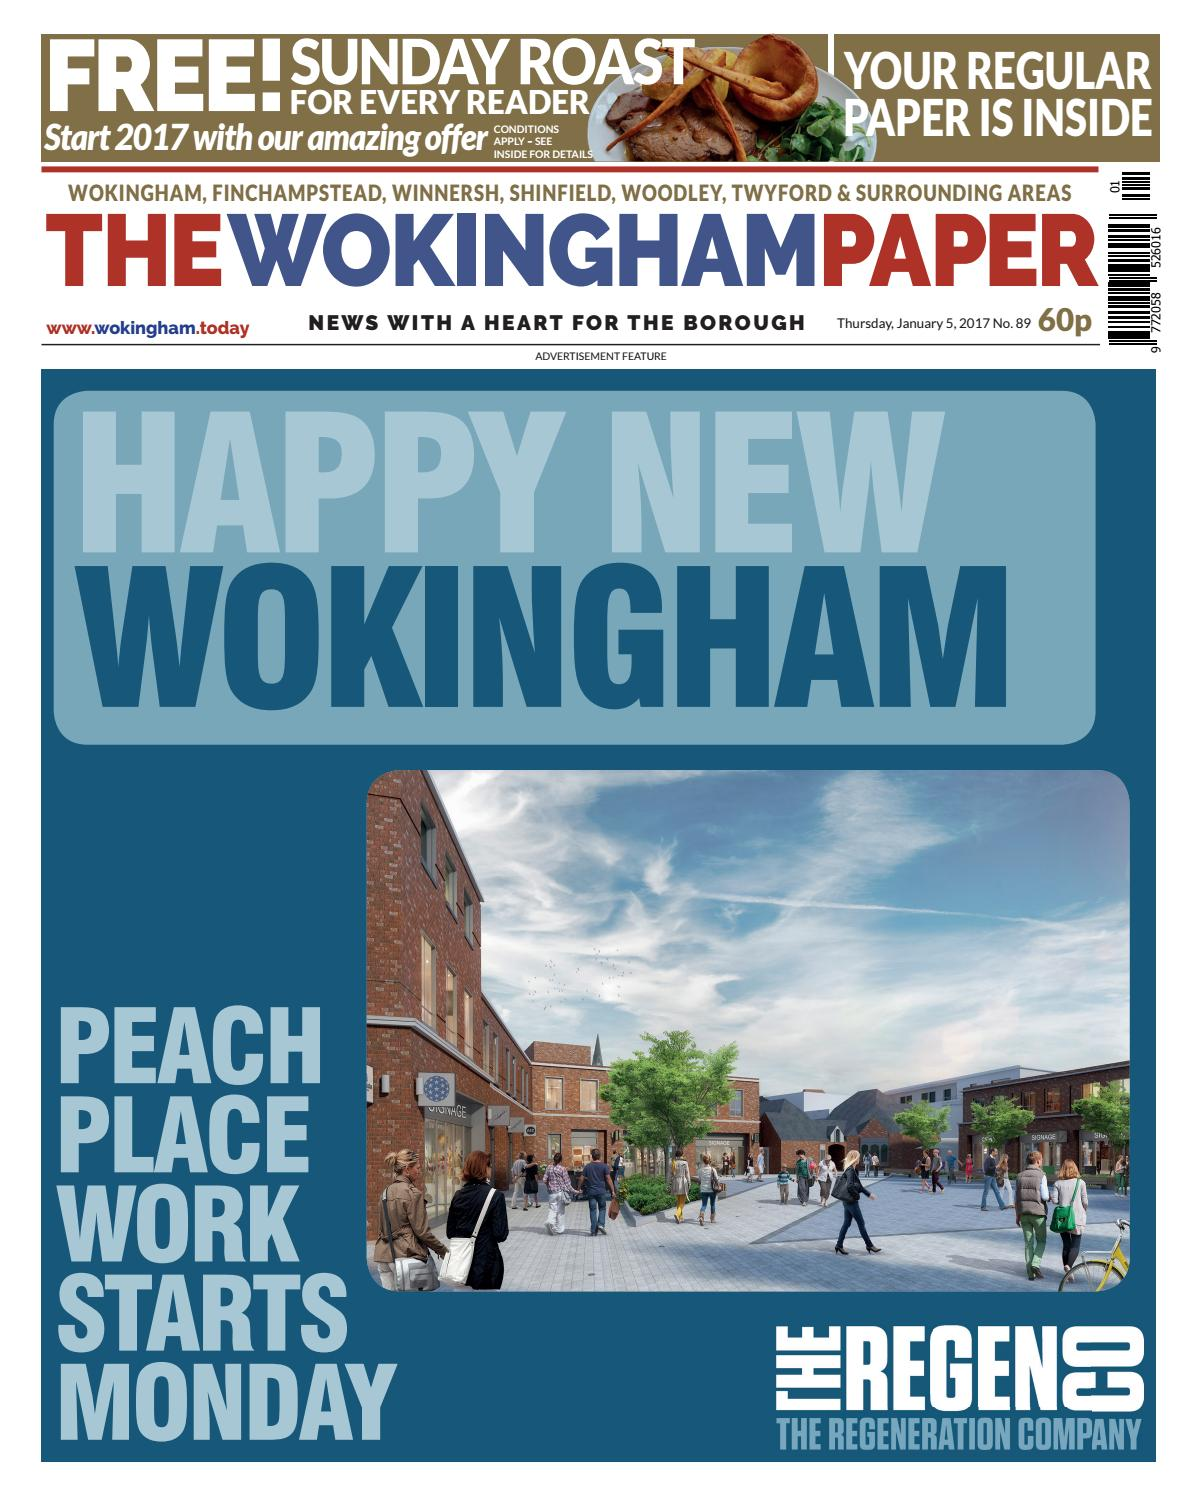 The Wokingham Paper, January 5, 2017